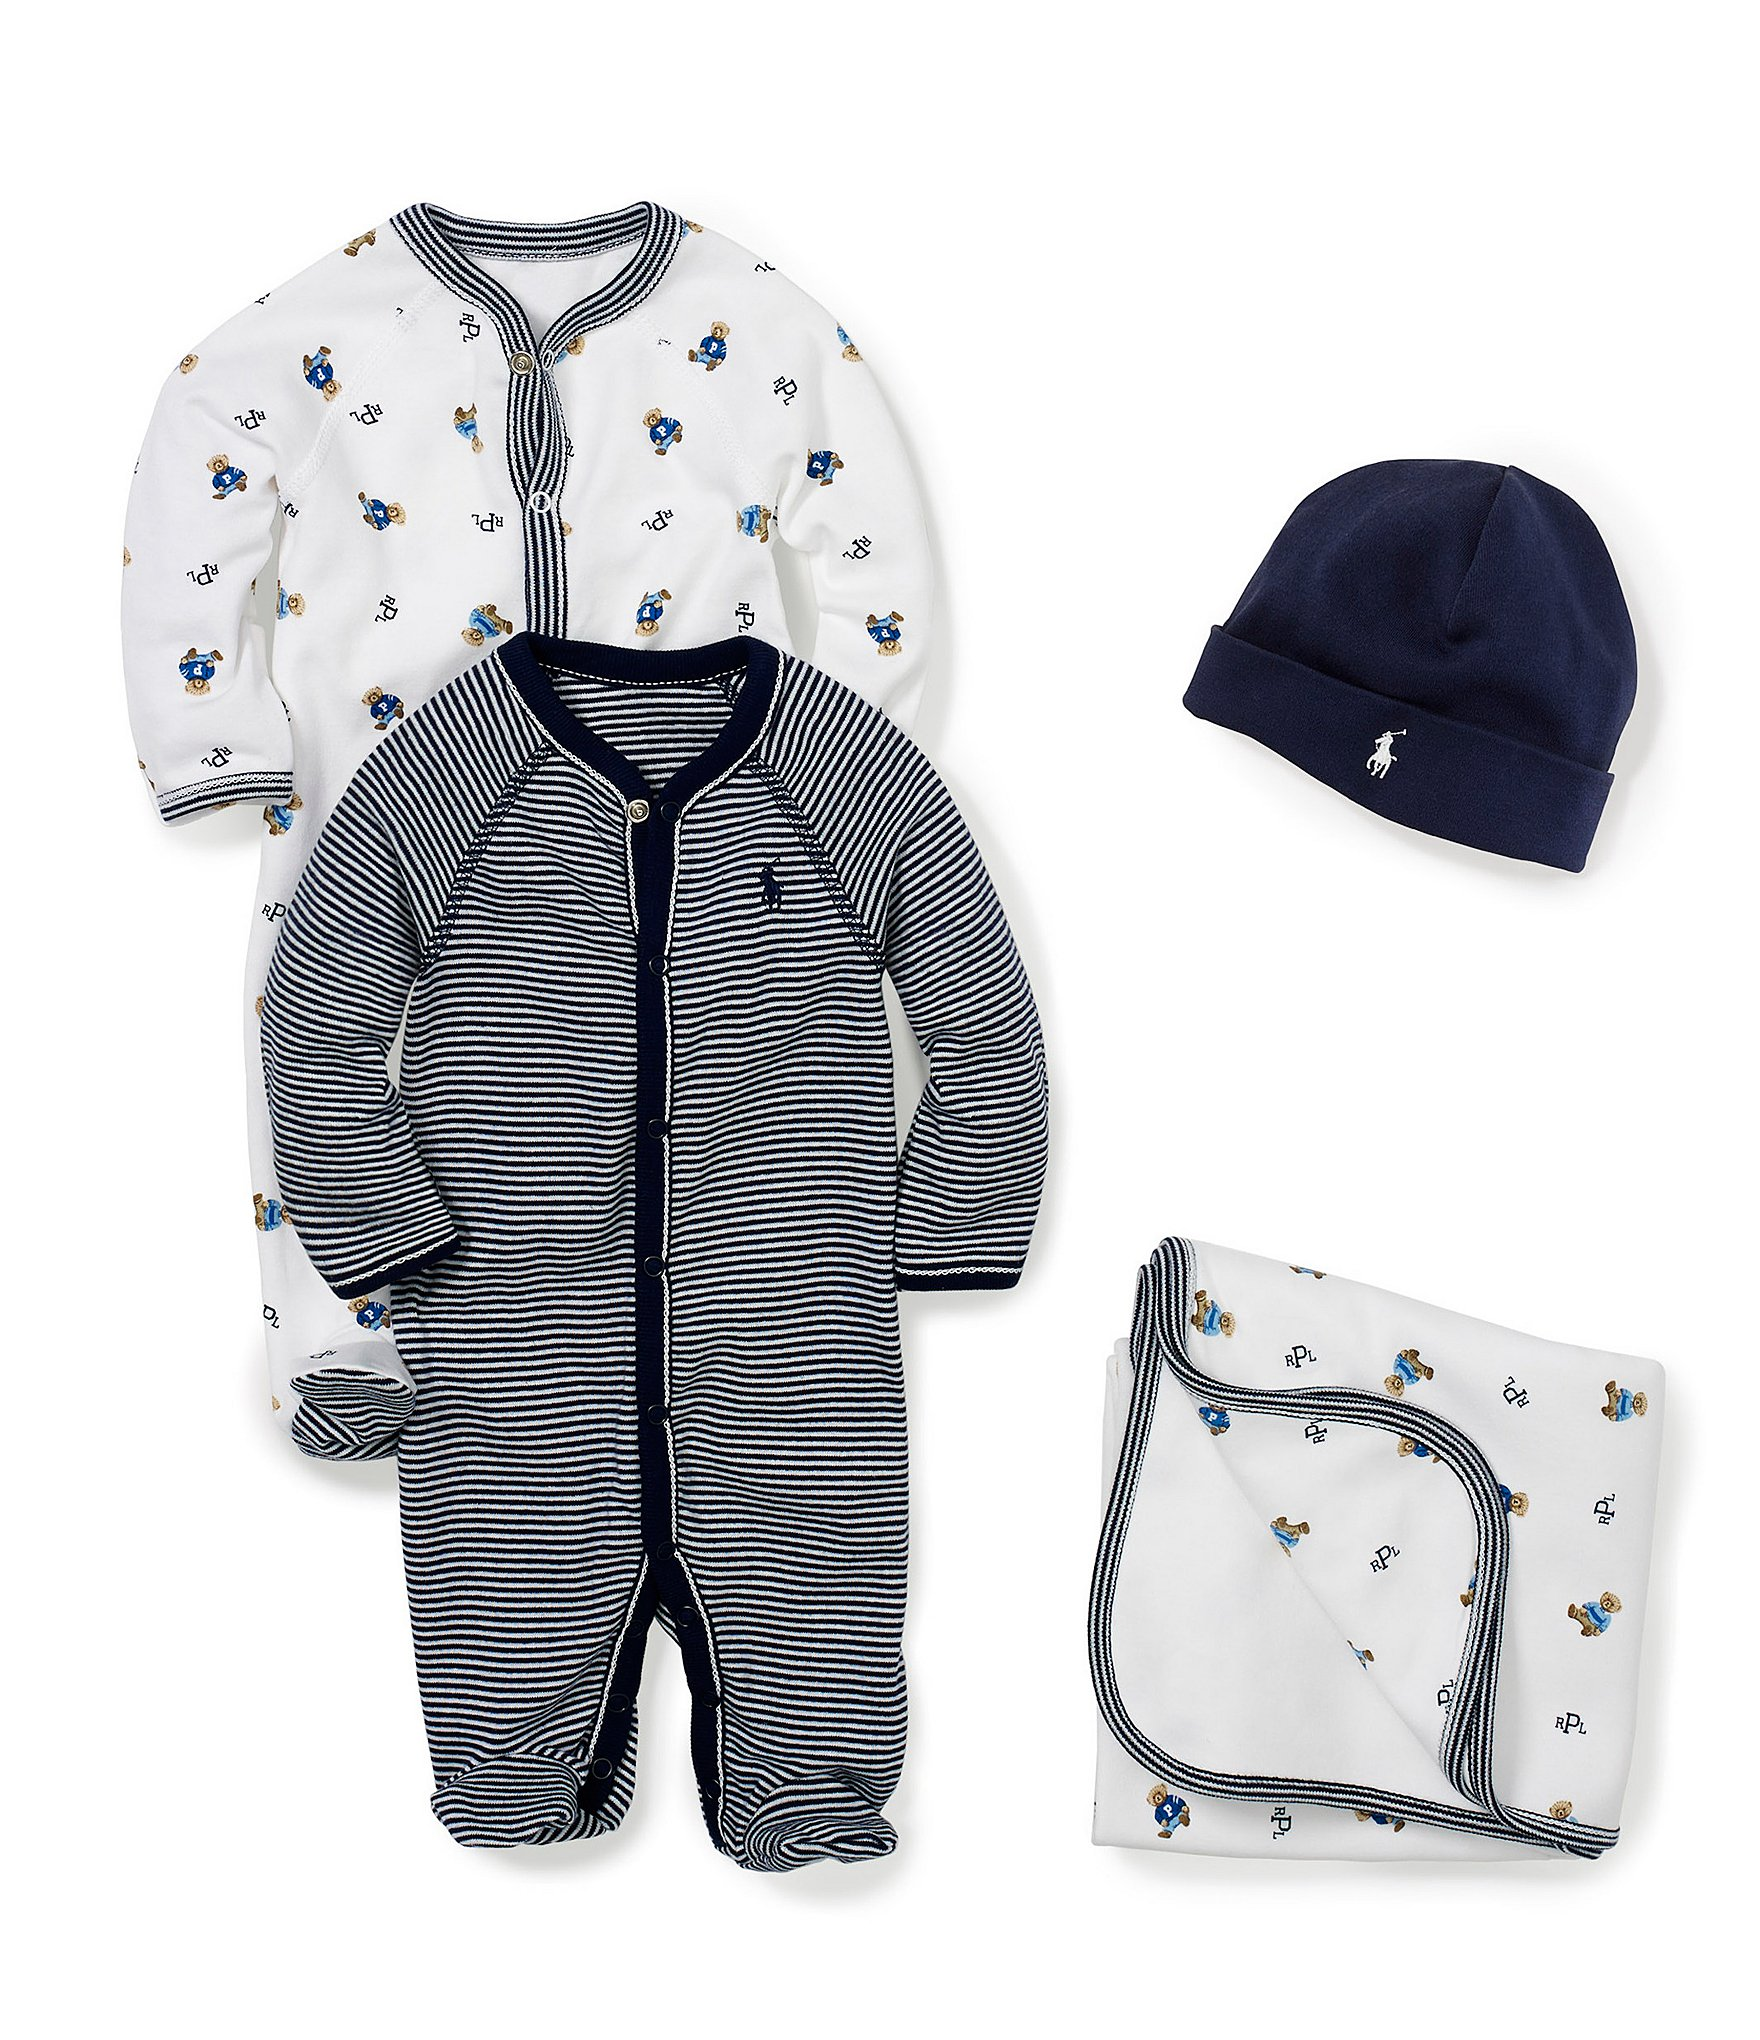 Shop for Ralph Lauren baby boys' clothing at Dillard's. Shop dresswear, outfits, bodysuits, onesies and more.